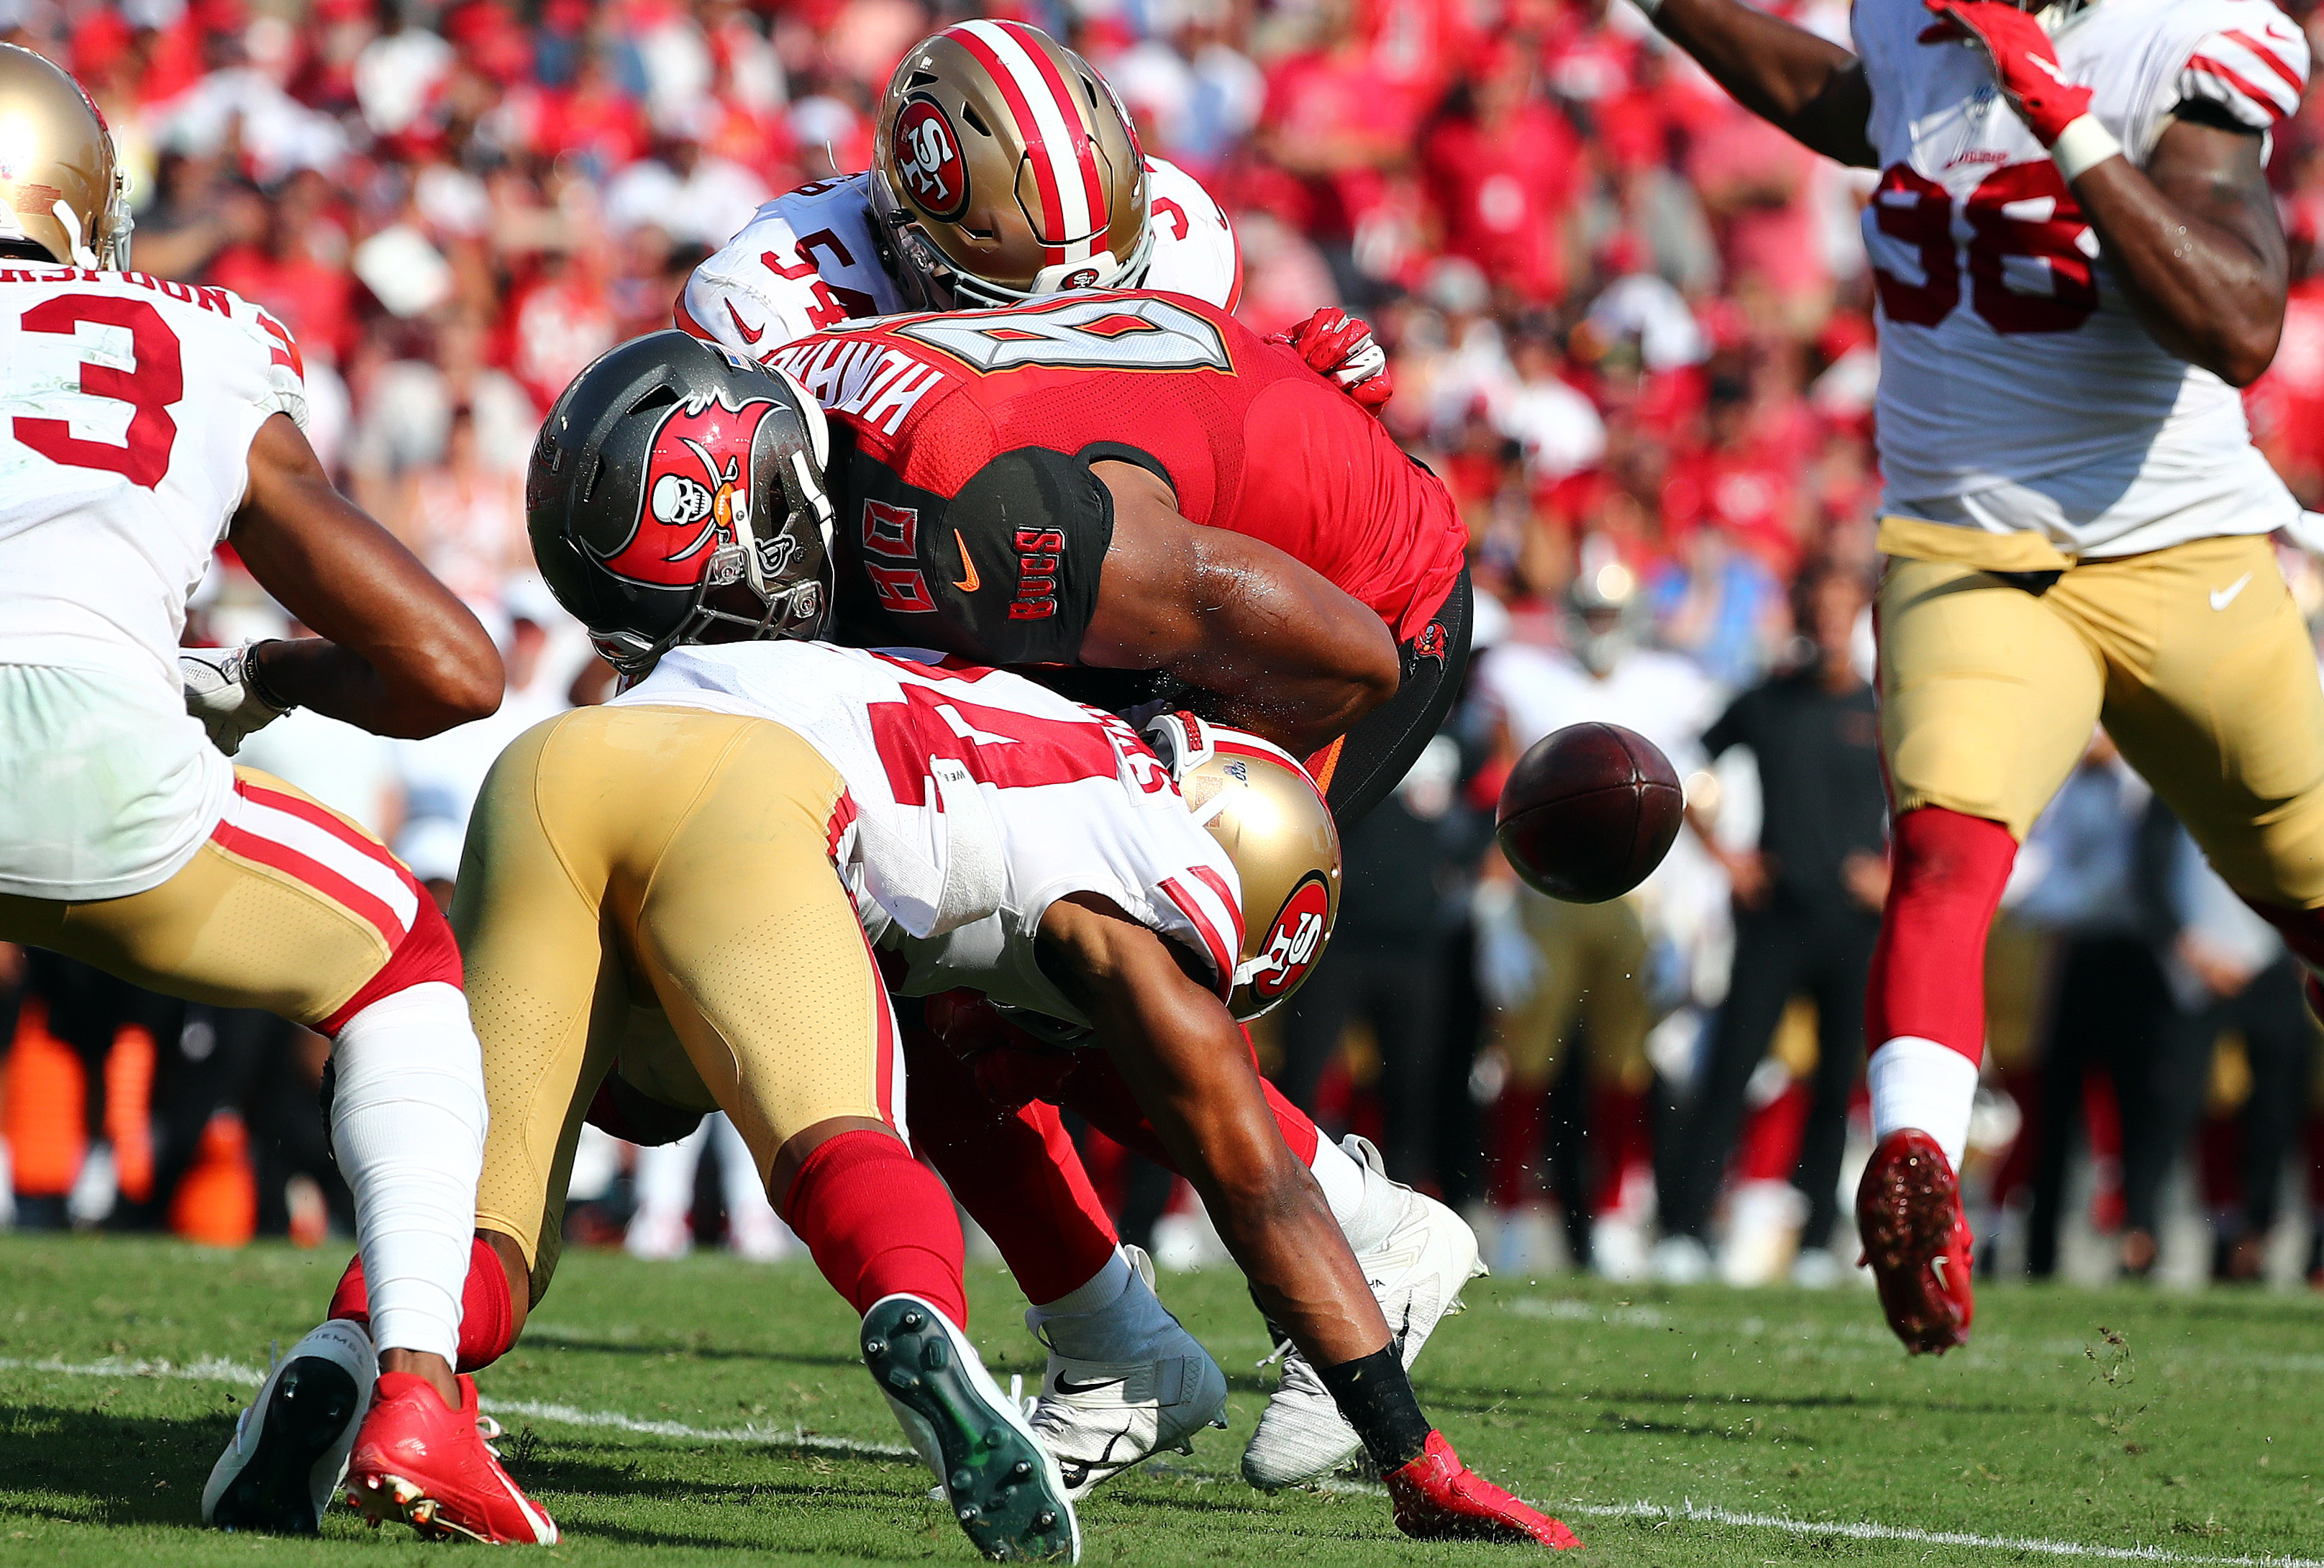 Tampa Bay Buccaneers tight end O.J. Howard fumbles the ball as San Francisco 49ers defensive back K'Waun Williams defends during the first half at Raymond James Stadium.